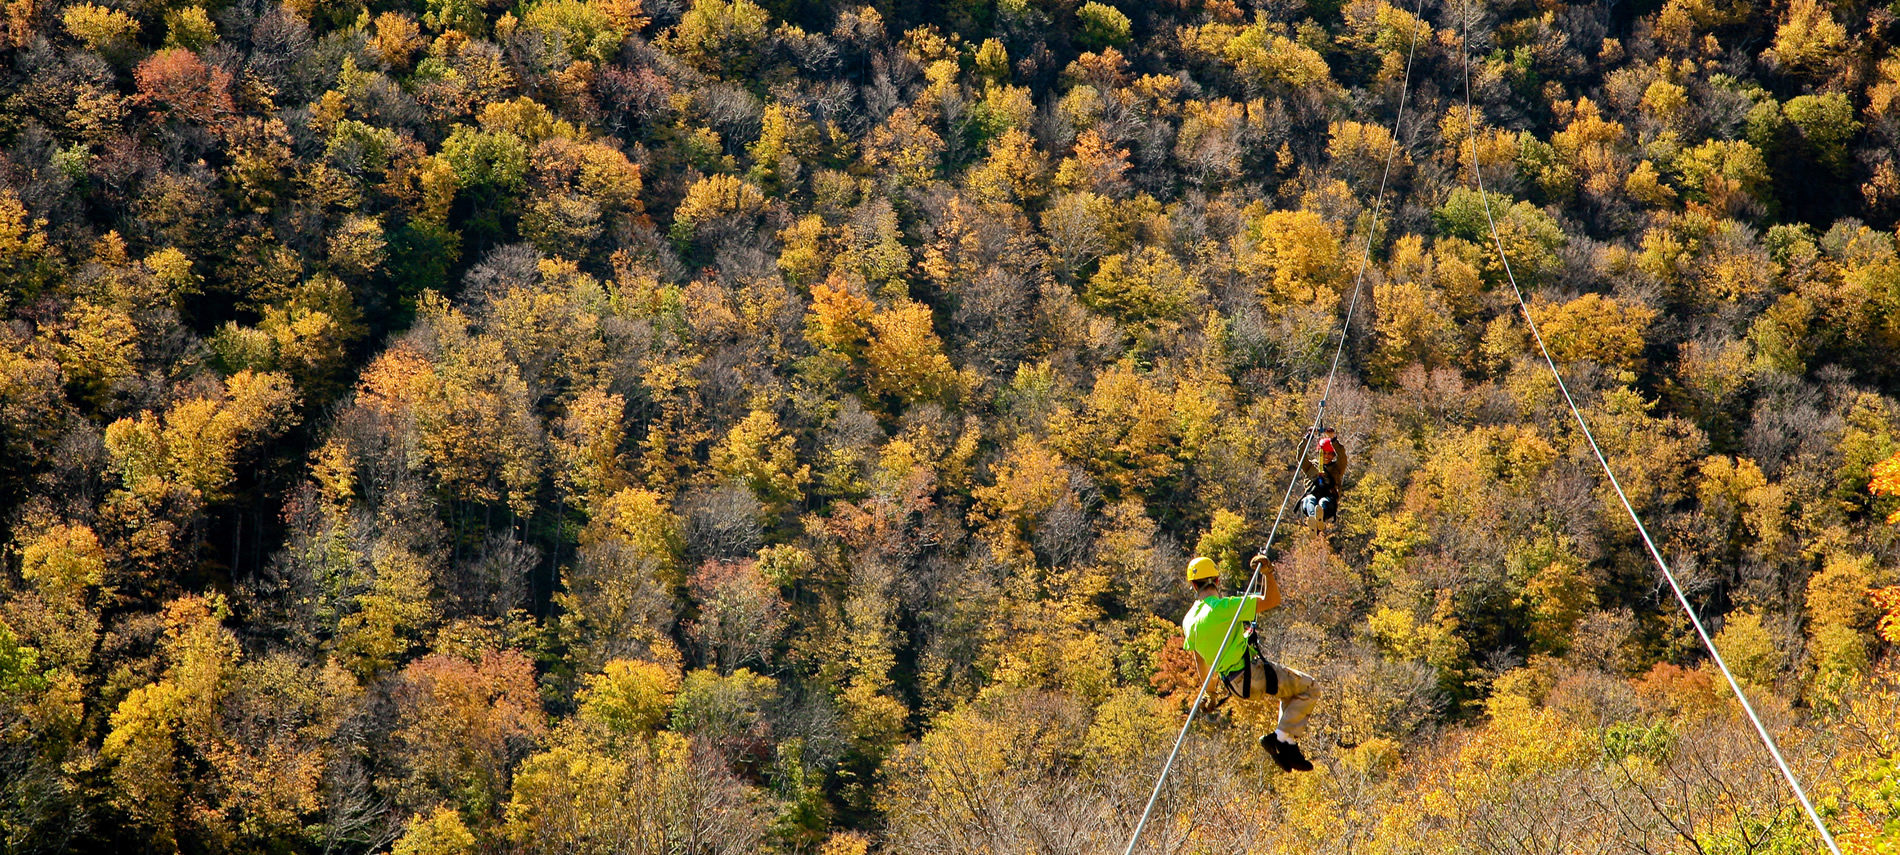 someone zipping on a zipline over the treetops